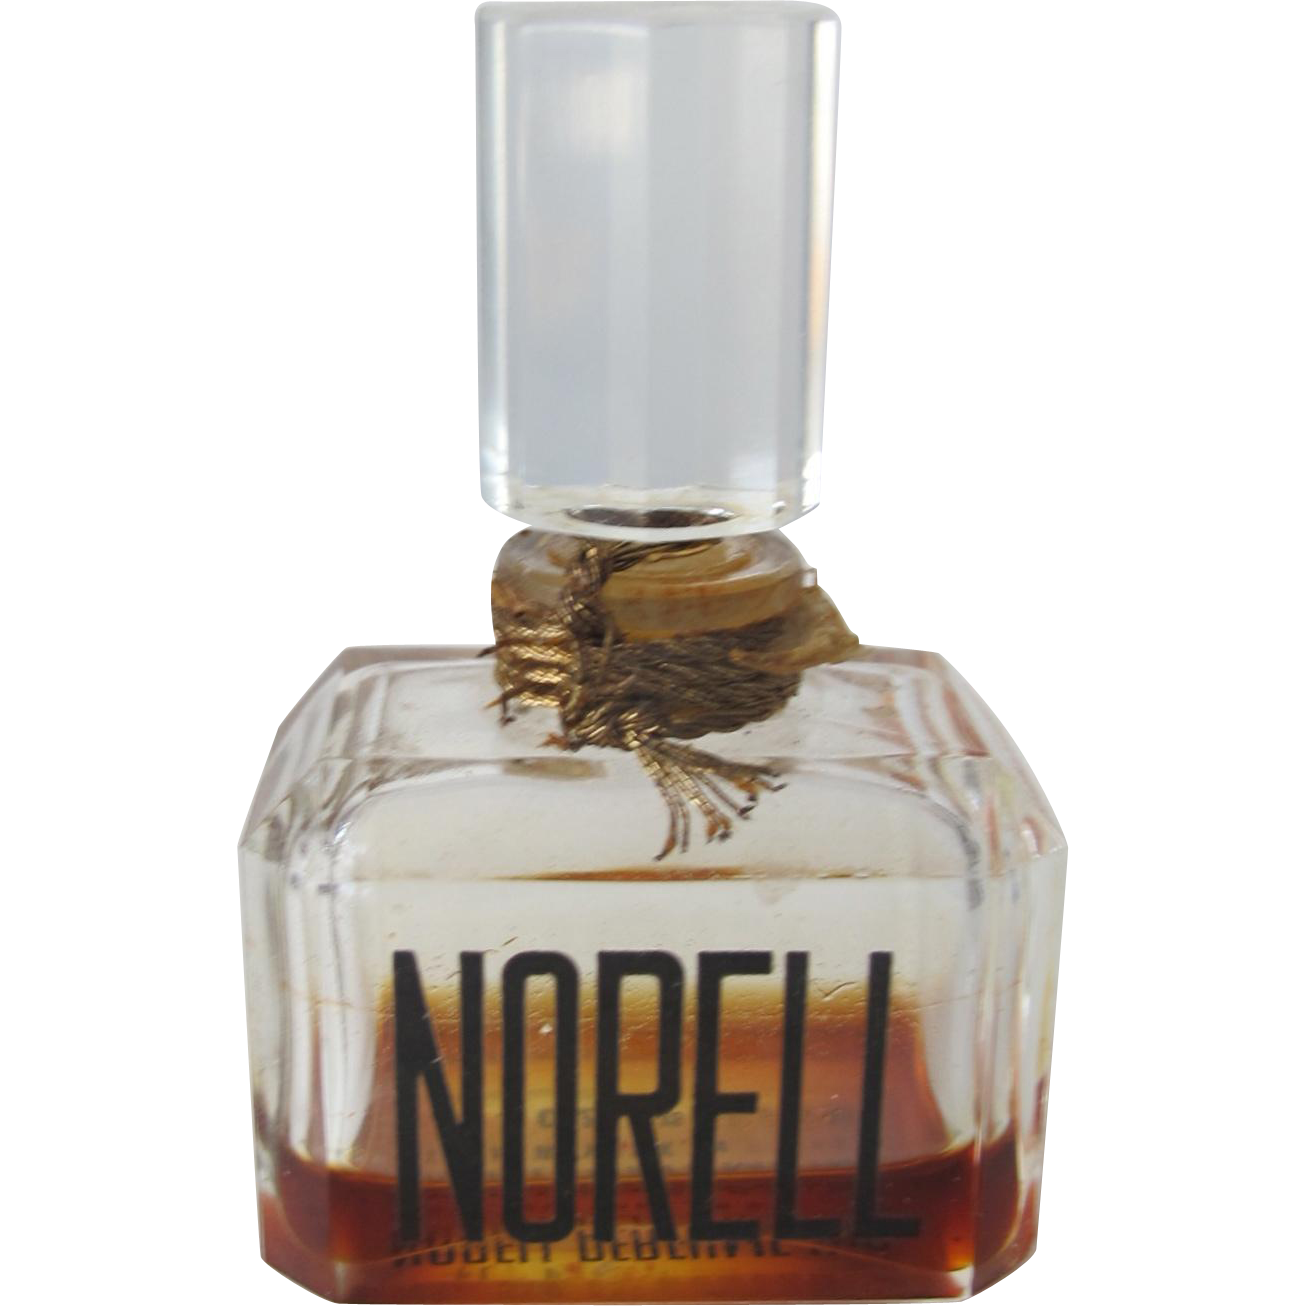 Norell Perfume Bottle Small All Glass Bottle